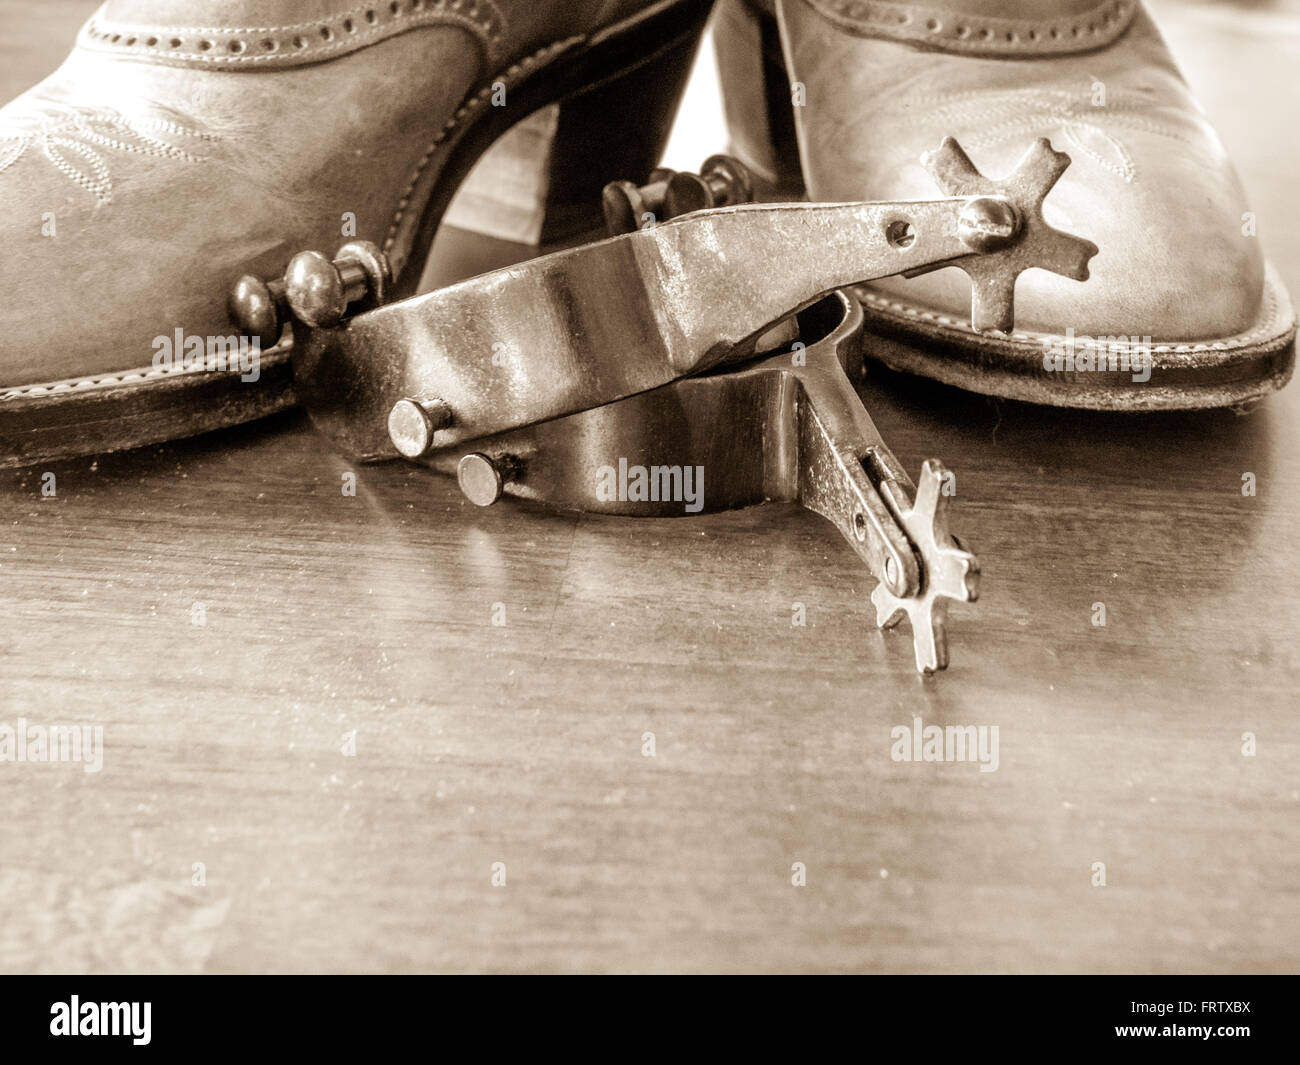 Boots and spurs; wood foreground - Stock Image